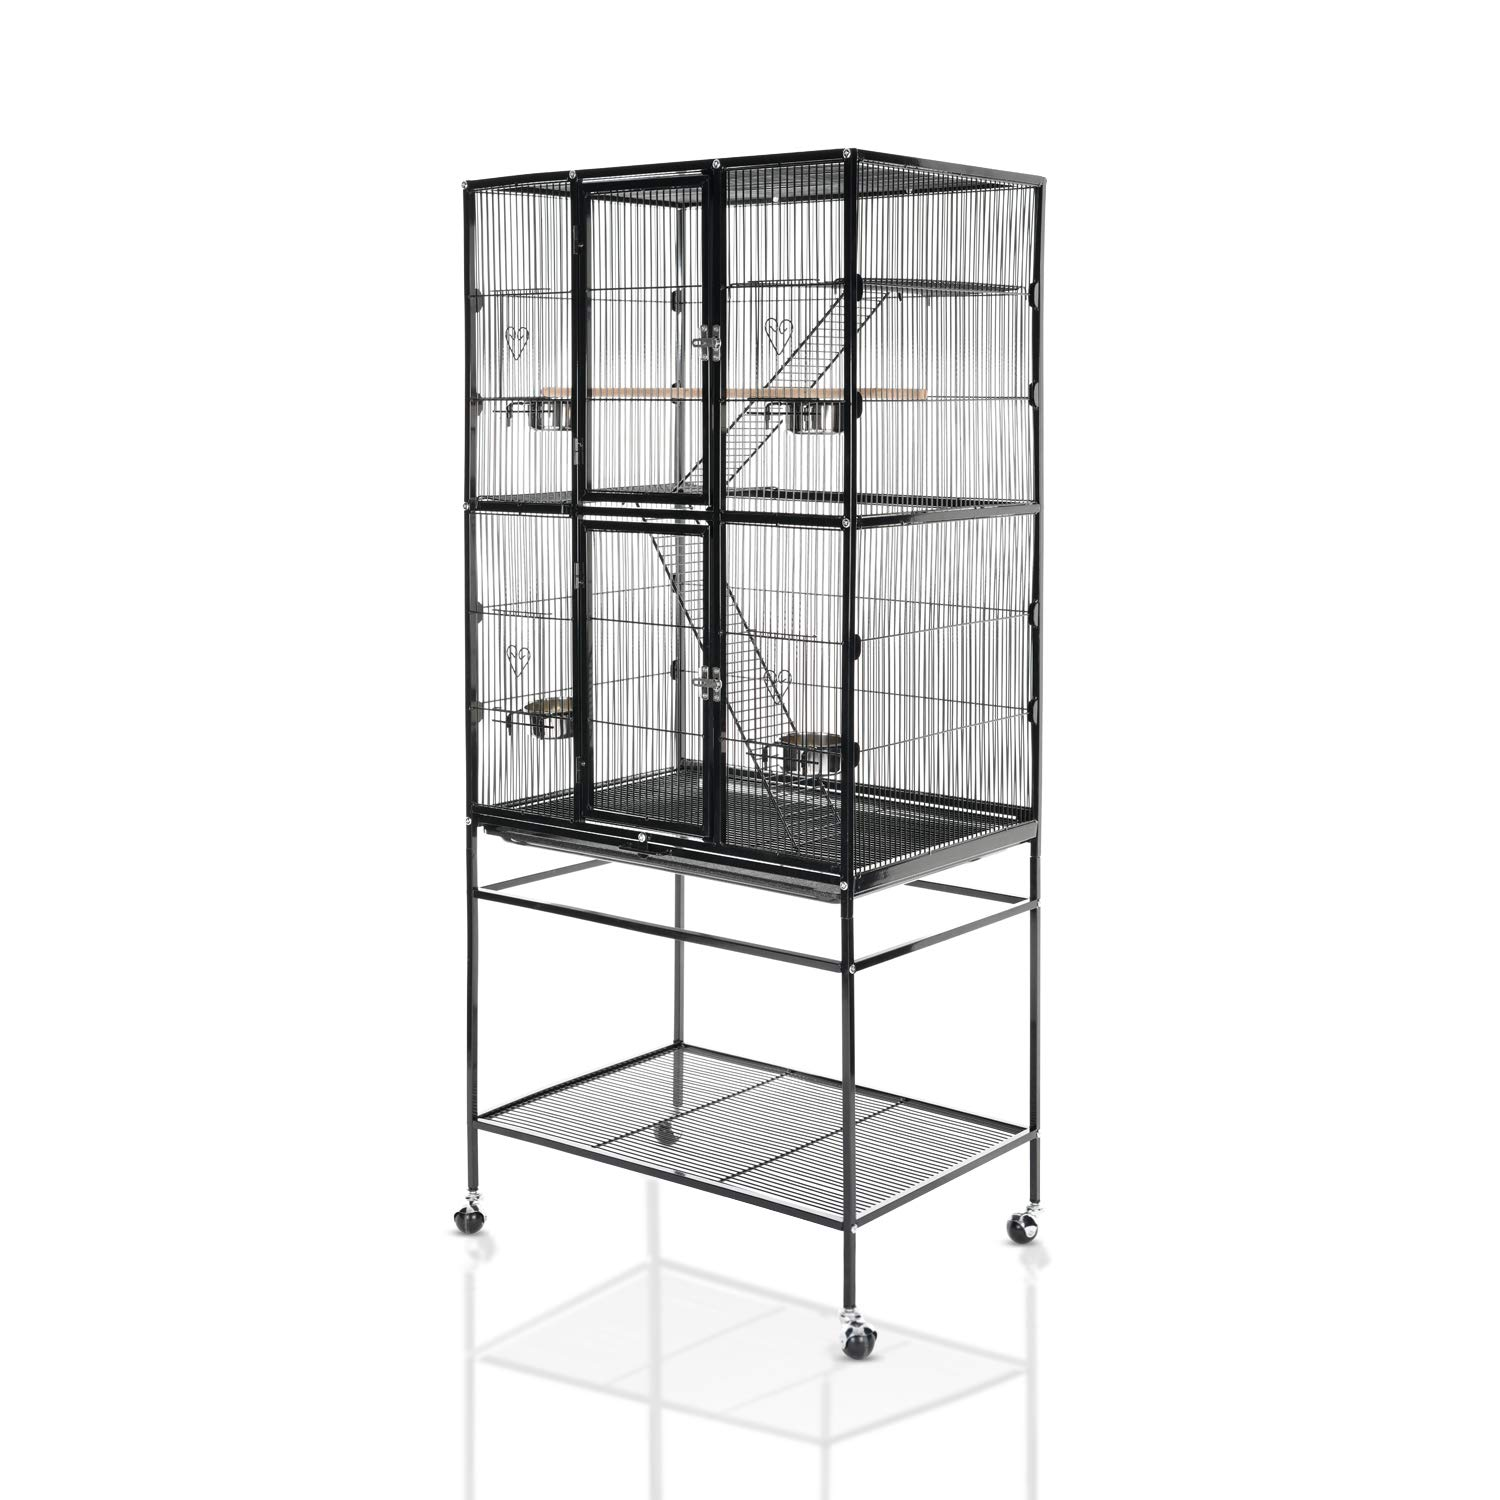 LAZY BUDDY Bird Cage 63'' Large Wrought Iron Bird Cage with Stand for Parrots, Parakeets, Cocktiel, Budgie and Other Birds. (Black) by LAZY BUDDY